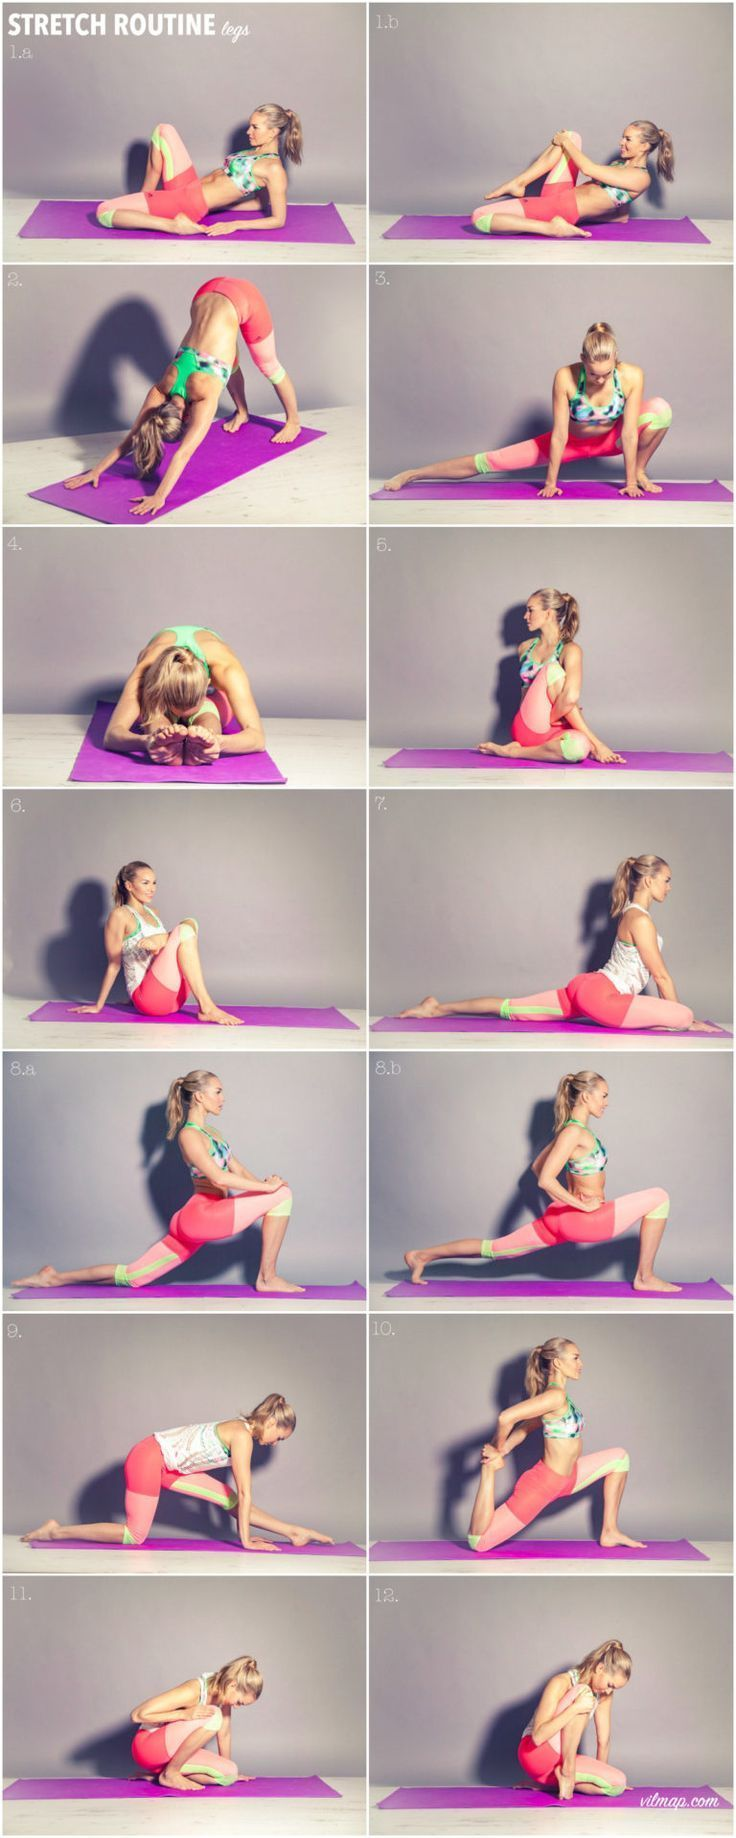 stretch-routine-legs-vilma-p #BeautyBlog #MakeupOfTheDay #MakeupByMe #MakeupLife... - Yoga fitness -...